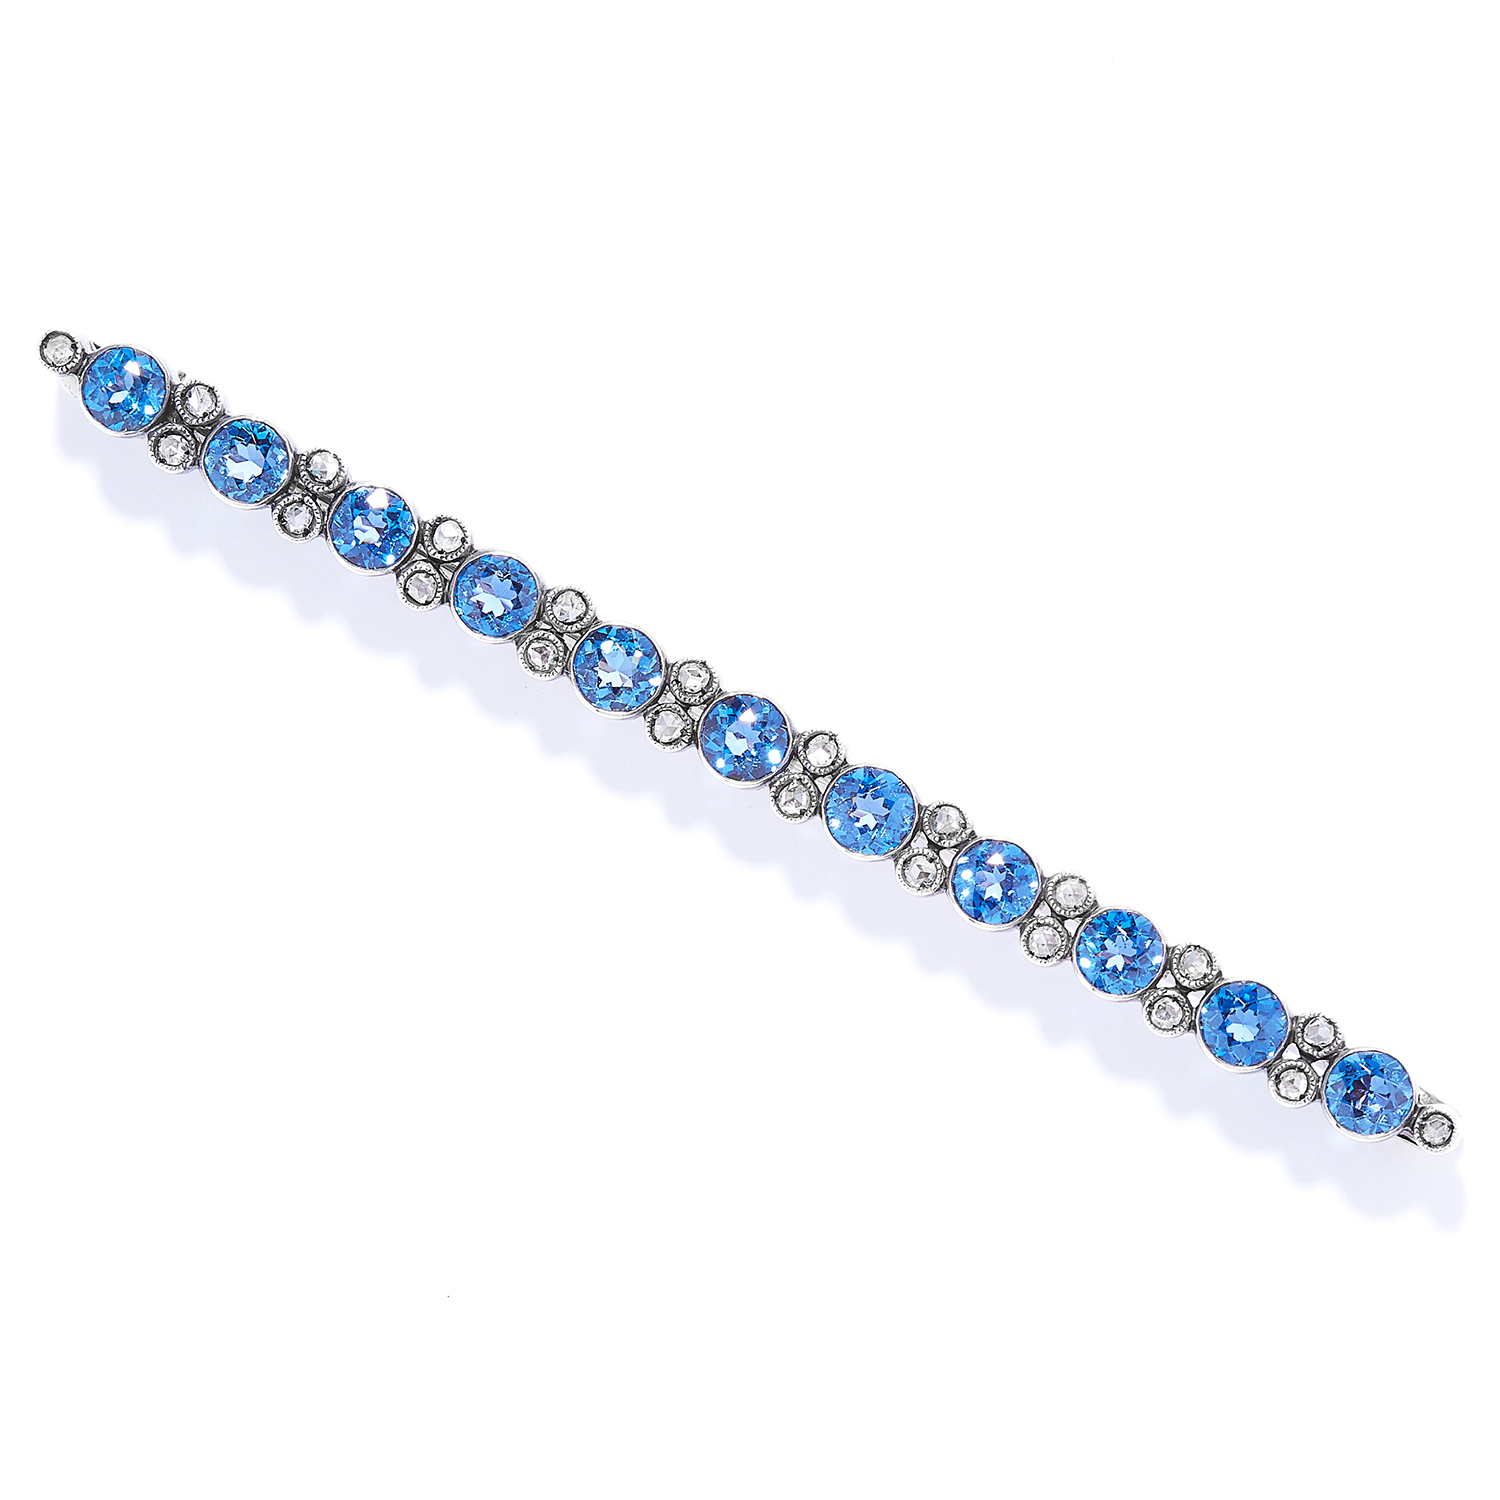 ANTIQUE 4.50 CARAT SAPPHIRE AND DIAMOND BAR BROOCH in gold, set with round cut sapphires totalling